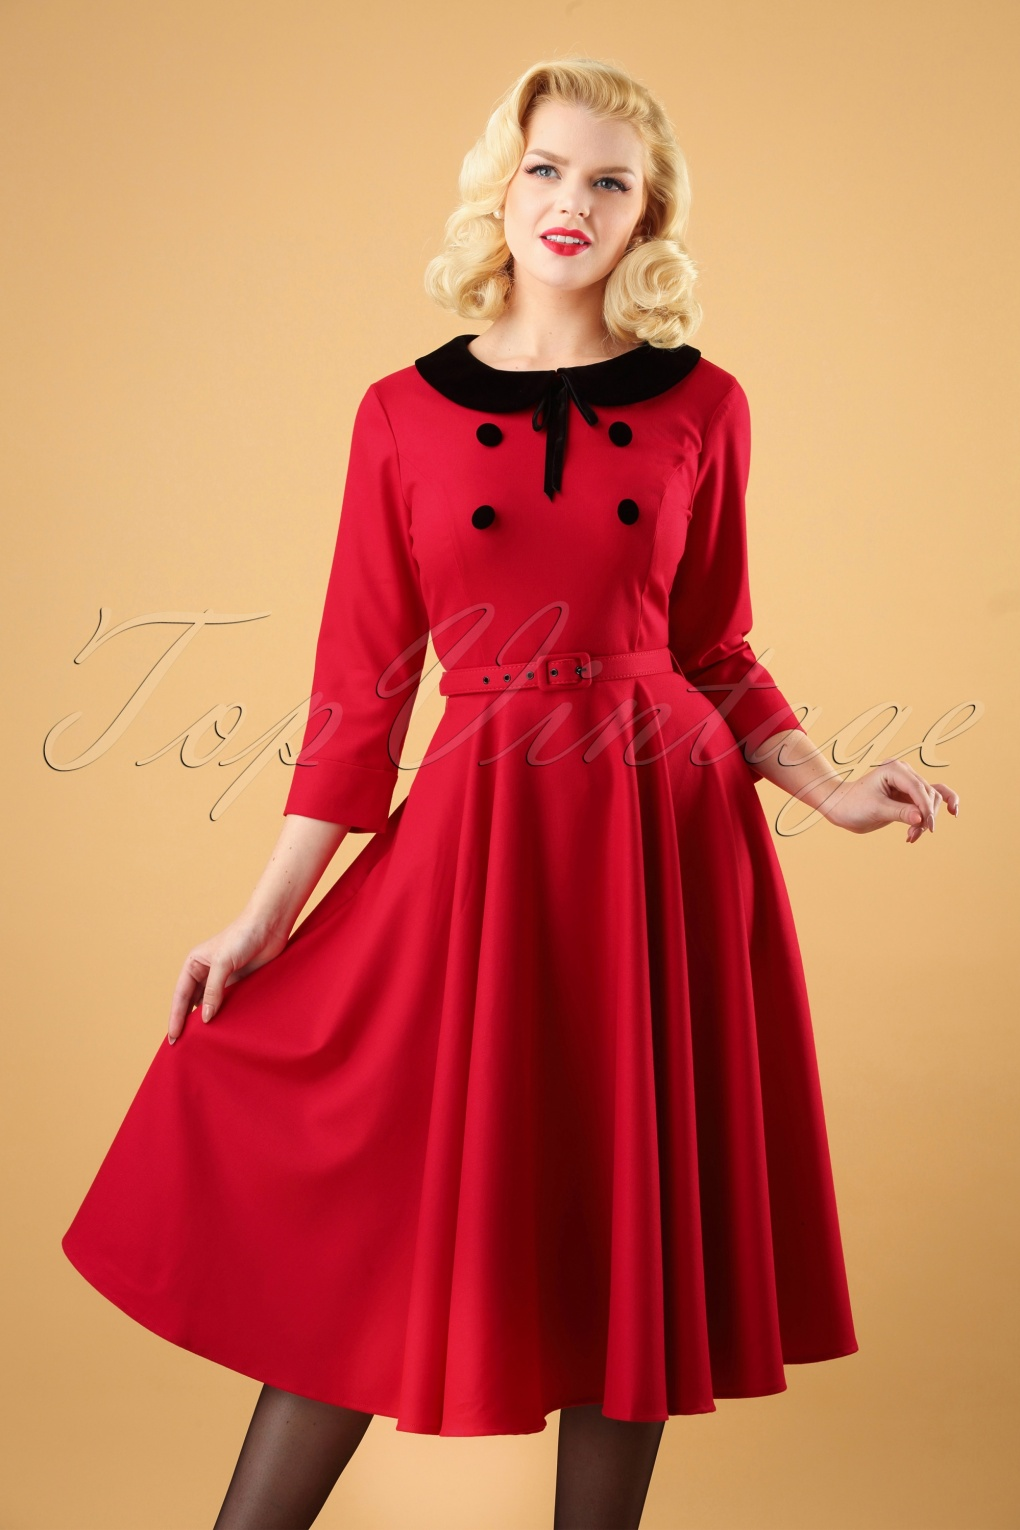 1950s Dresses, 50s Dresses | 1950s Style Dresses 50s Christine Swing Dress in Red £86.48 AT vintagedancer.com